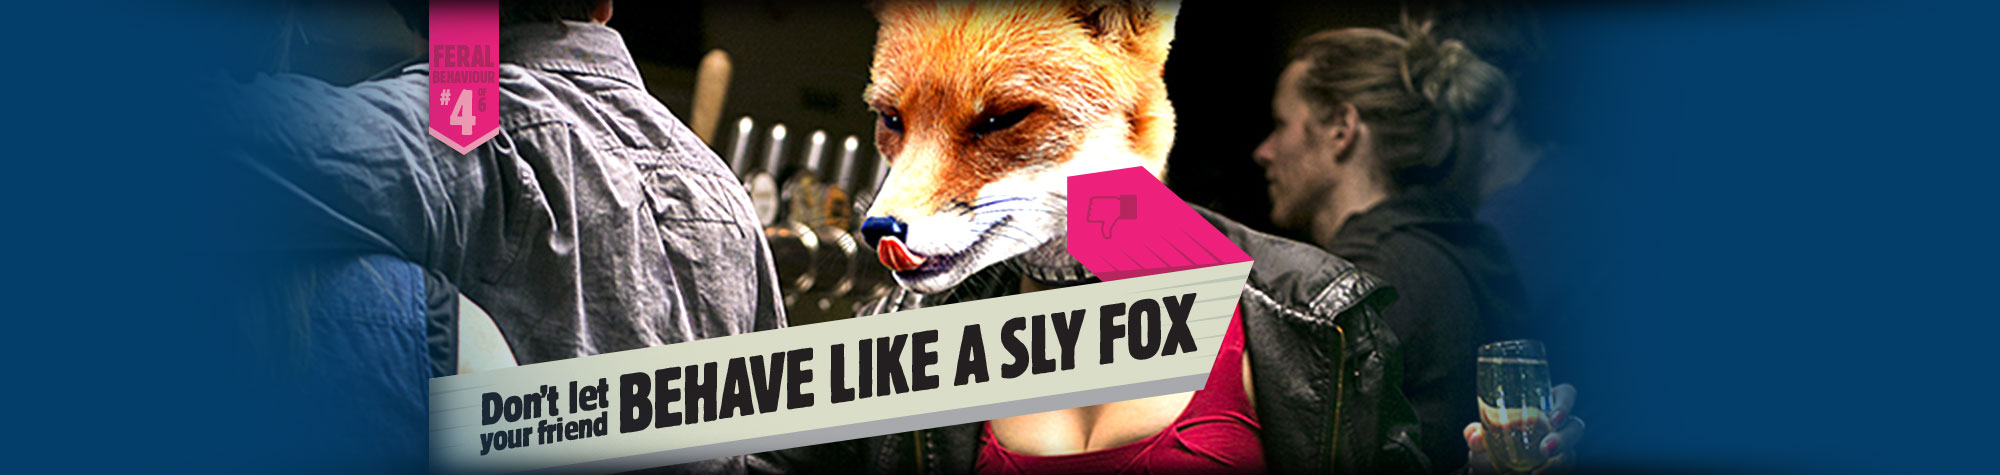 Don't let your friend behave like a sly fox